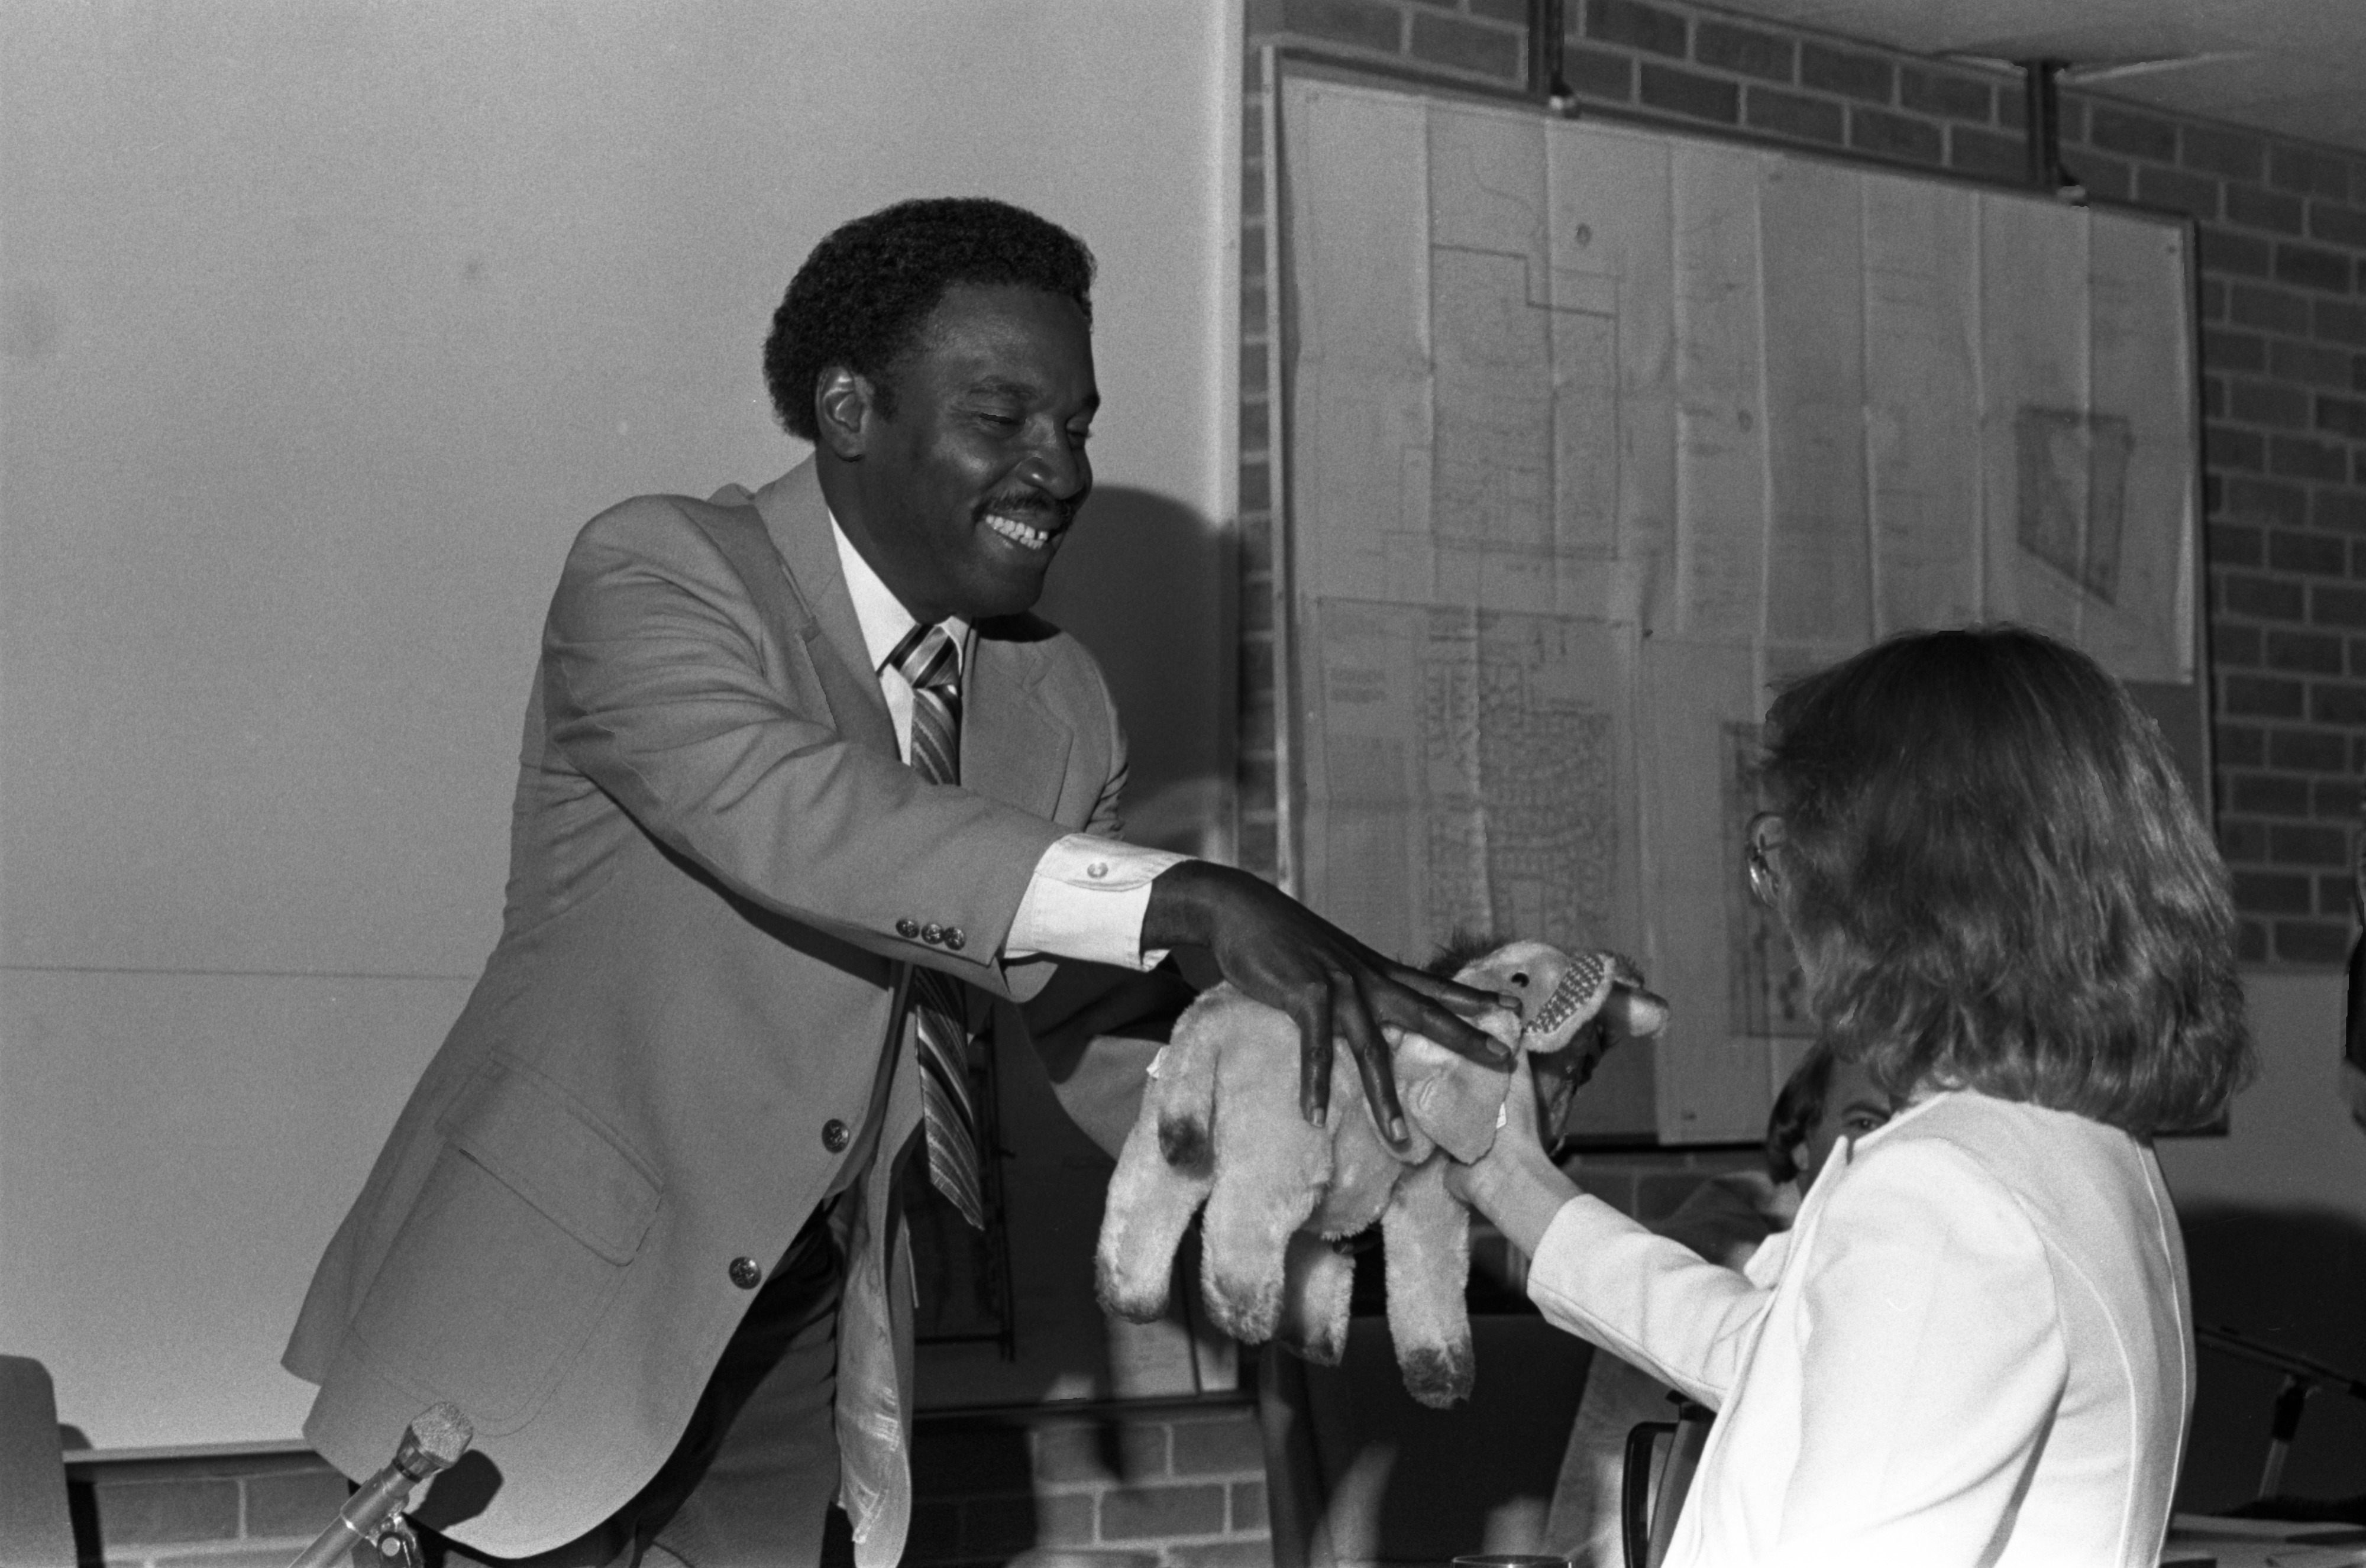 Sylvester Murray Receives Stuffed Animal Prior To His Last City Council Meeting, September 5, 1979 image